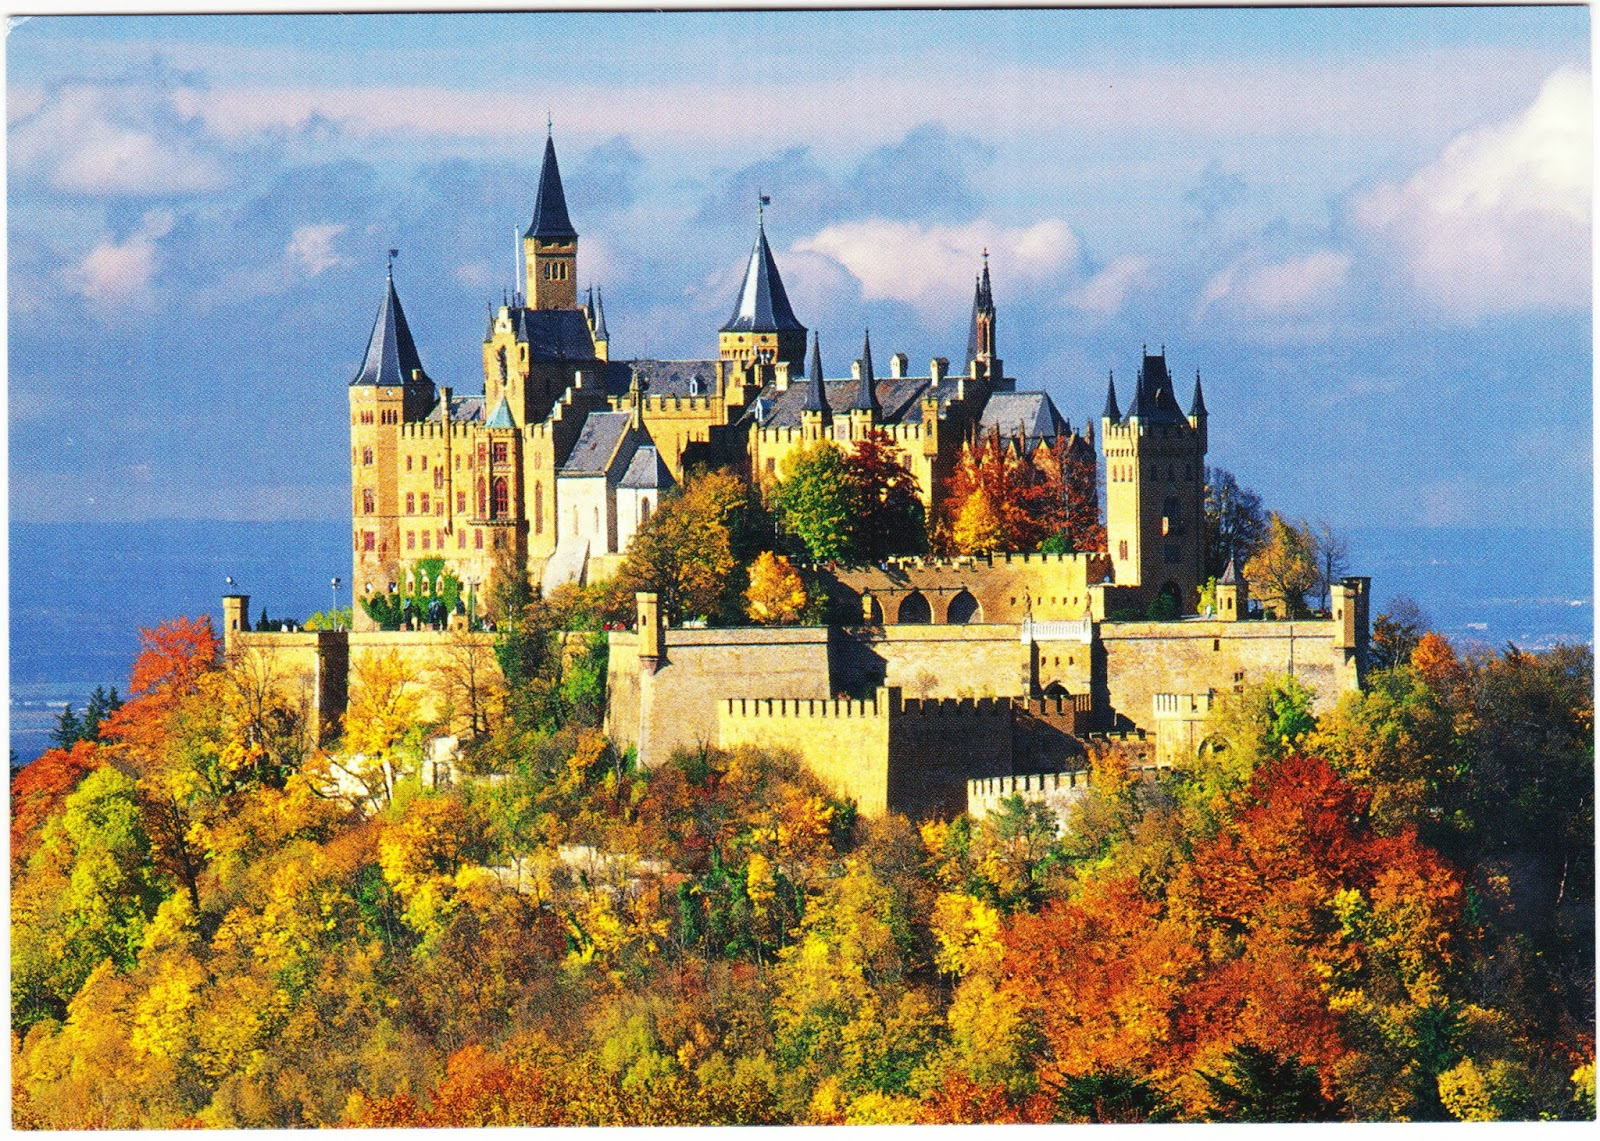 heres another postcard of hohenzollern taken from a distance as you can see it is an isolated and well protected stronghold sitting atop a 2800 foot